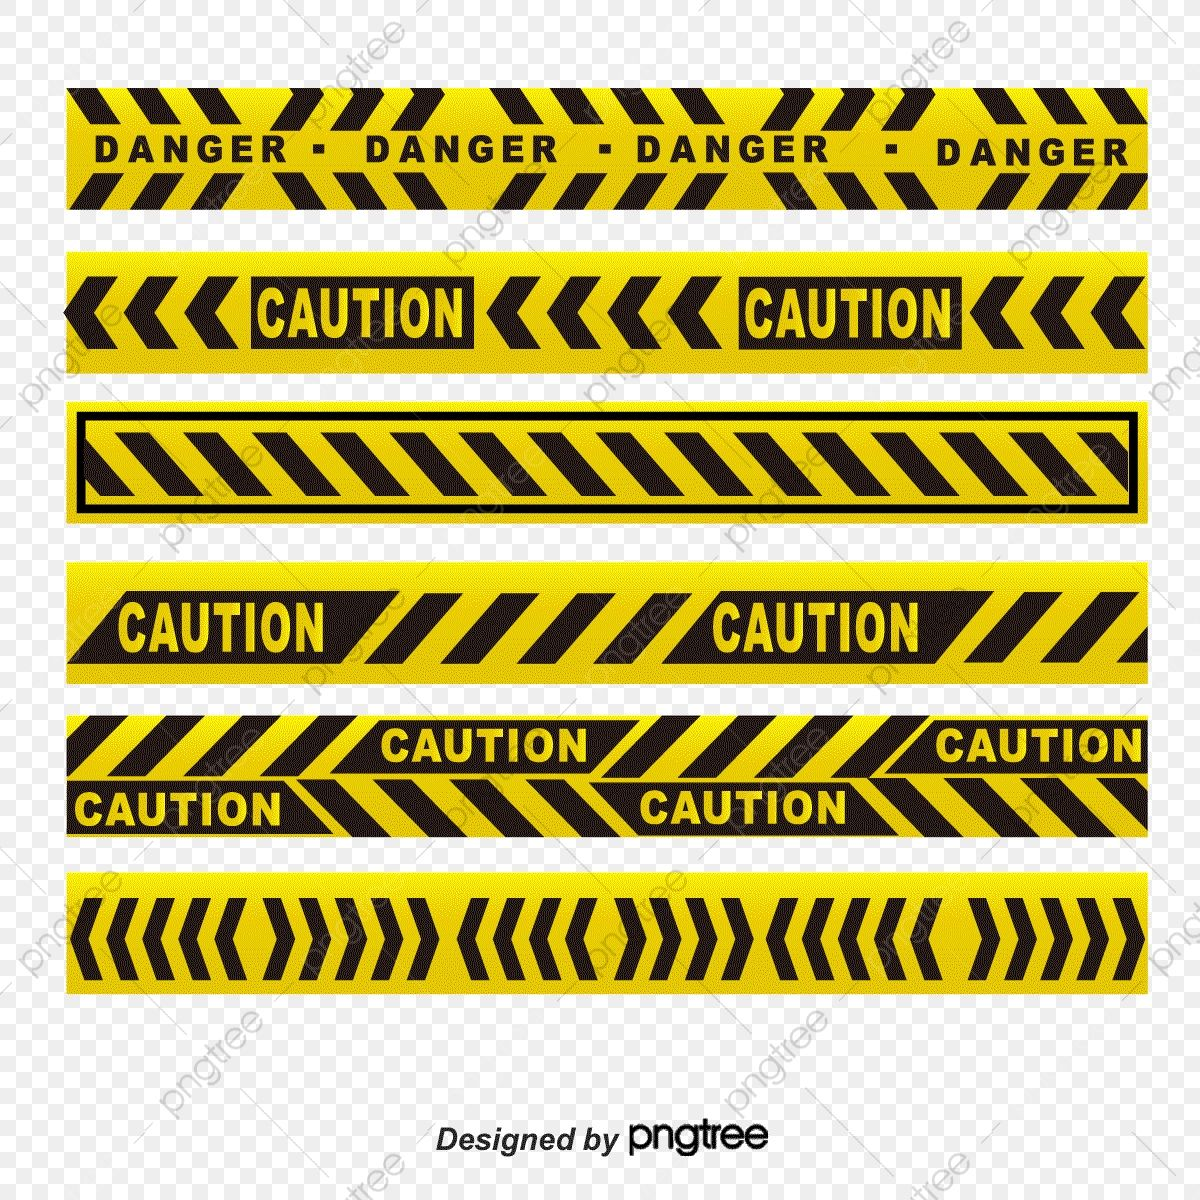 Download Wallpapers 4k Yellow And Black Lines Grunge Art Caution Stripes Creative Caution Lines Besthqwallpapers Com Black And White Graffiti Qhd Wallpaper Yellow Wallpaper